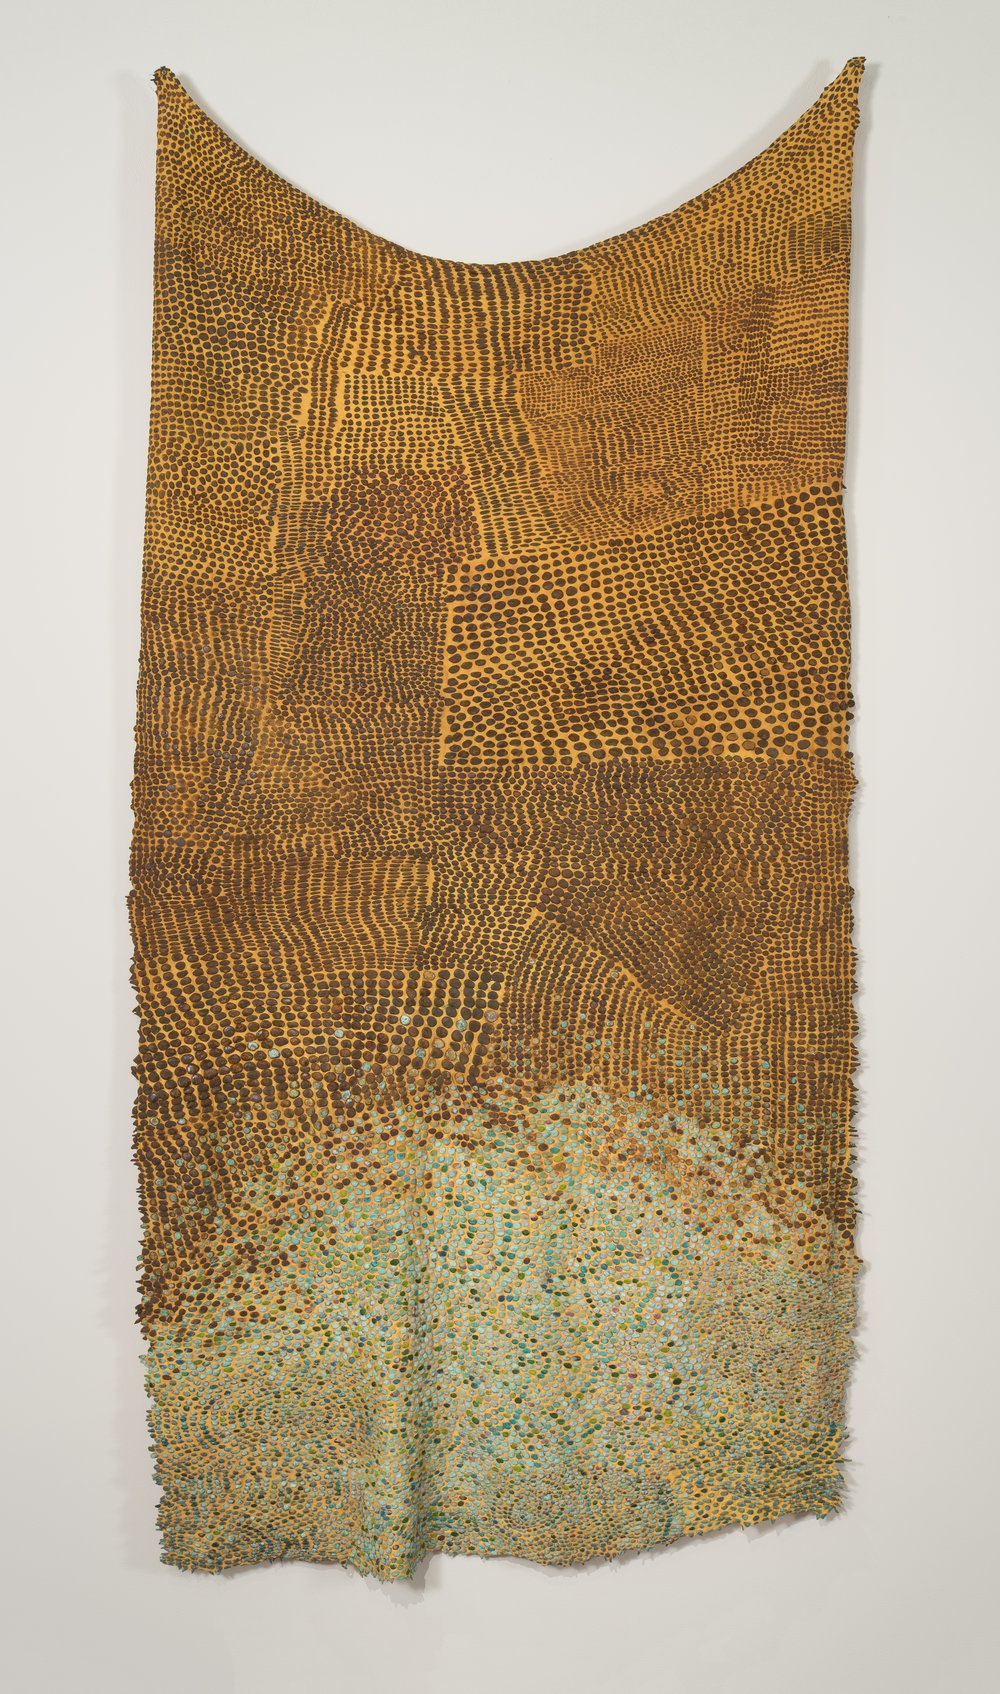 "Soulskin: Seeding the Prairie   nylon, iron, copper, pigment / manual cloqué  82"" x 42"" 1999"